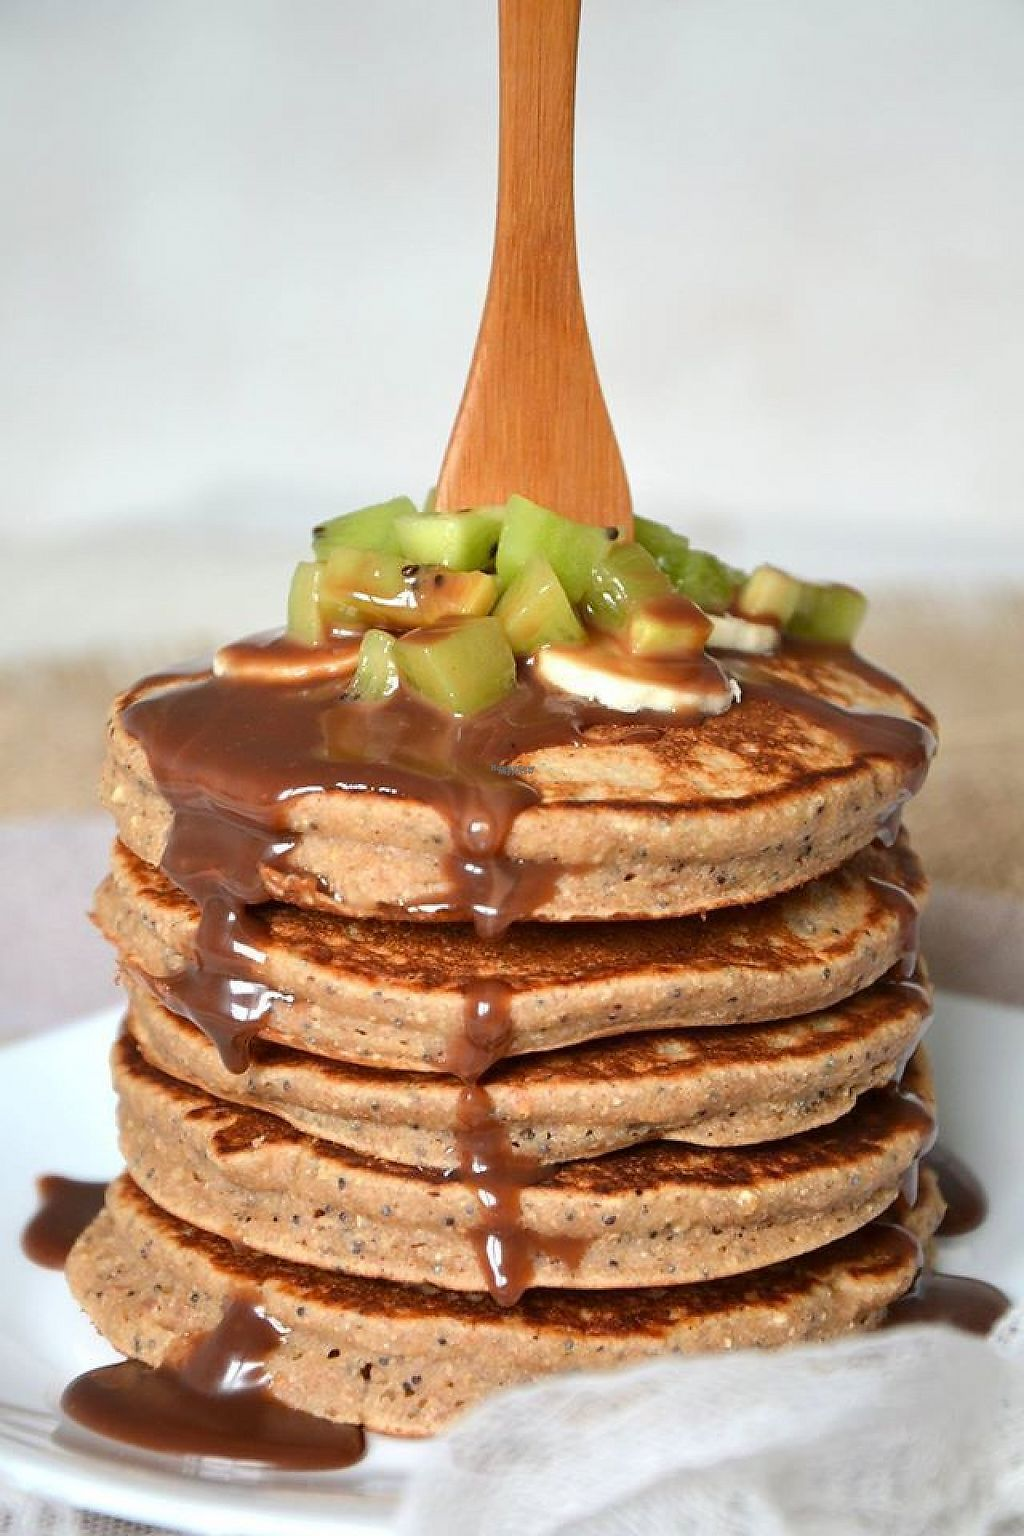 """Photo of La Vie Claire - Dode  by <a href=""""/members/profile/community"""">community</a> <br/>vegan pancakes  <br/> February 4, 2017  - <a href='/contact/abuse/image/68781/221910'>Report</a>"""